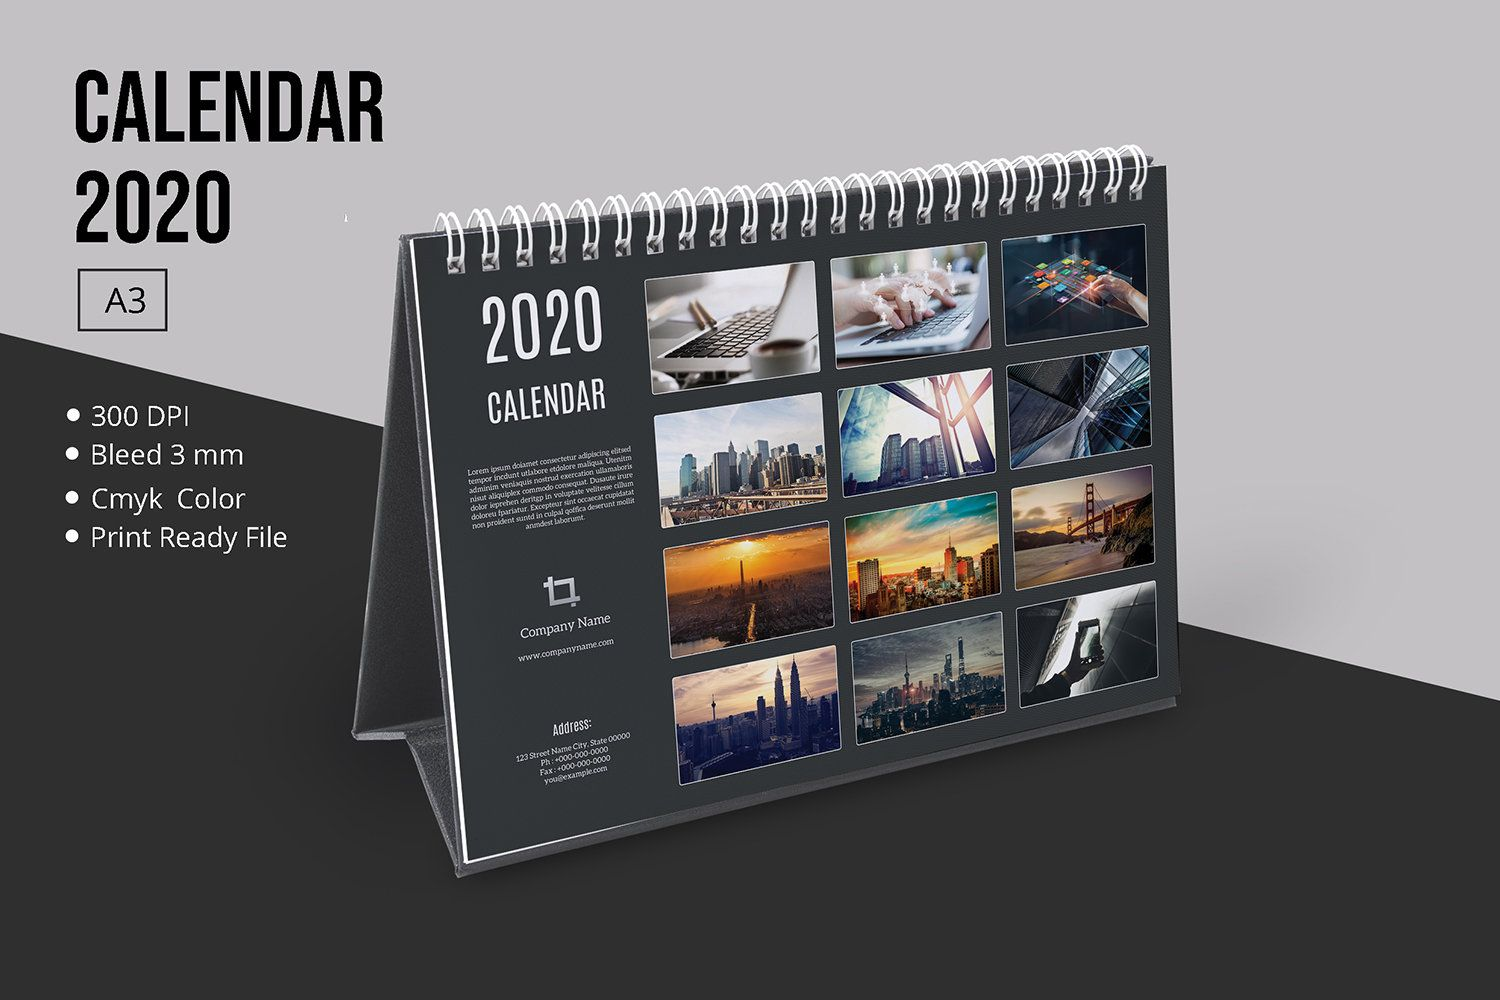 Desk Calendar Template 2020 Table Calendar Corporate Desk Calendar Template Photoshop Indesign Desk Calendar Template Desk Calendars Calendar Template